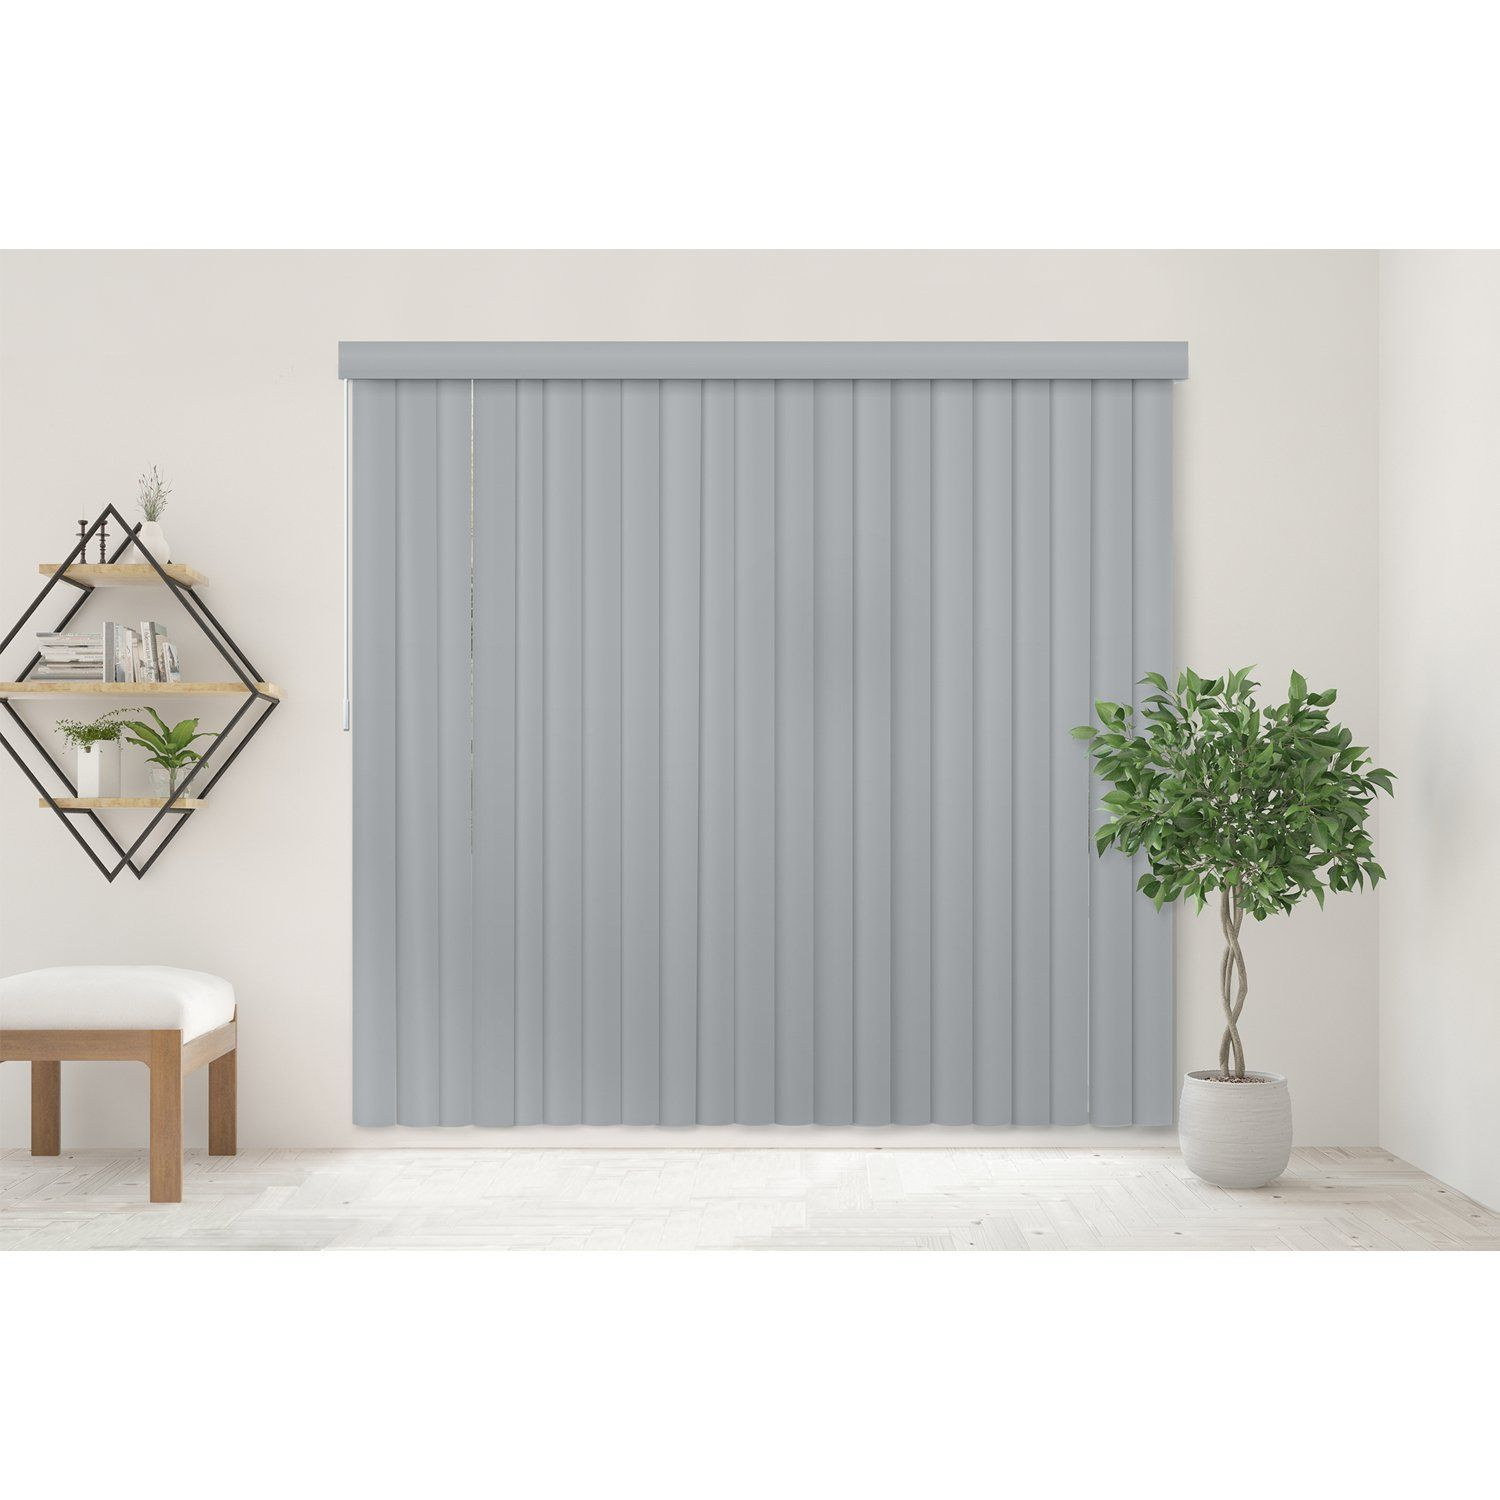 Chicology Cordless Vertical Blinds Patio Door Or Large Window Shade 78 W X 84 H Oxford Gray Vinyl Le Vertical Blinds Vertical Blinds Makeover Shades Blinds